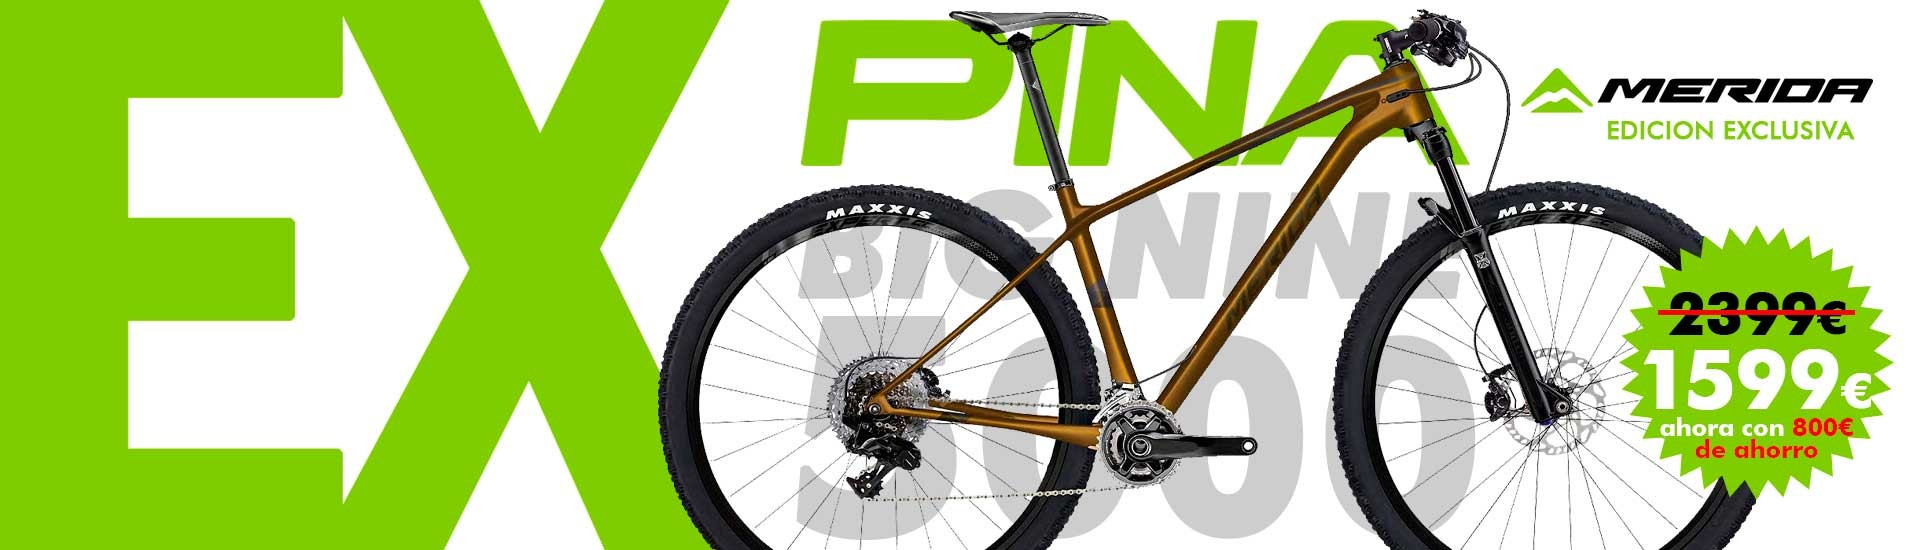 Bicicleta de montaña Merida Big Nine 5000 2019 Exclusiva Bicis Pina